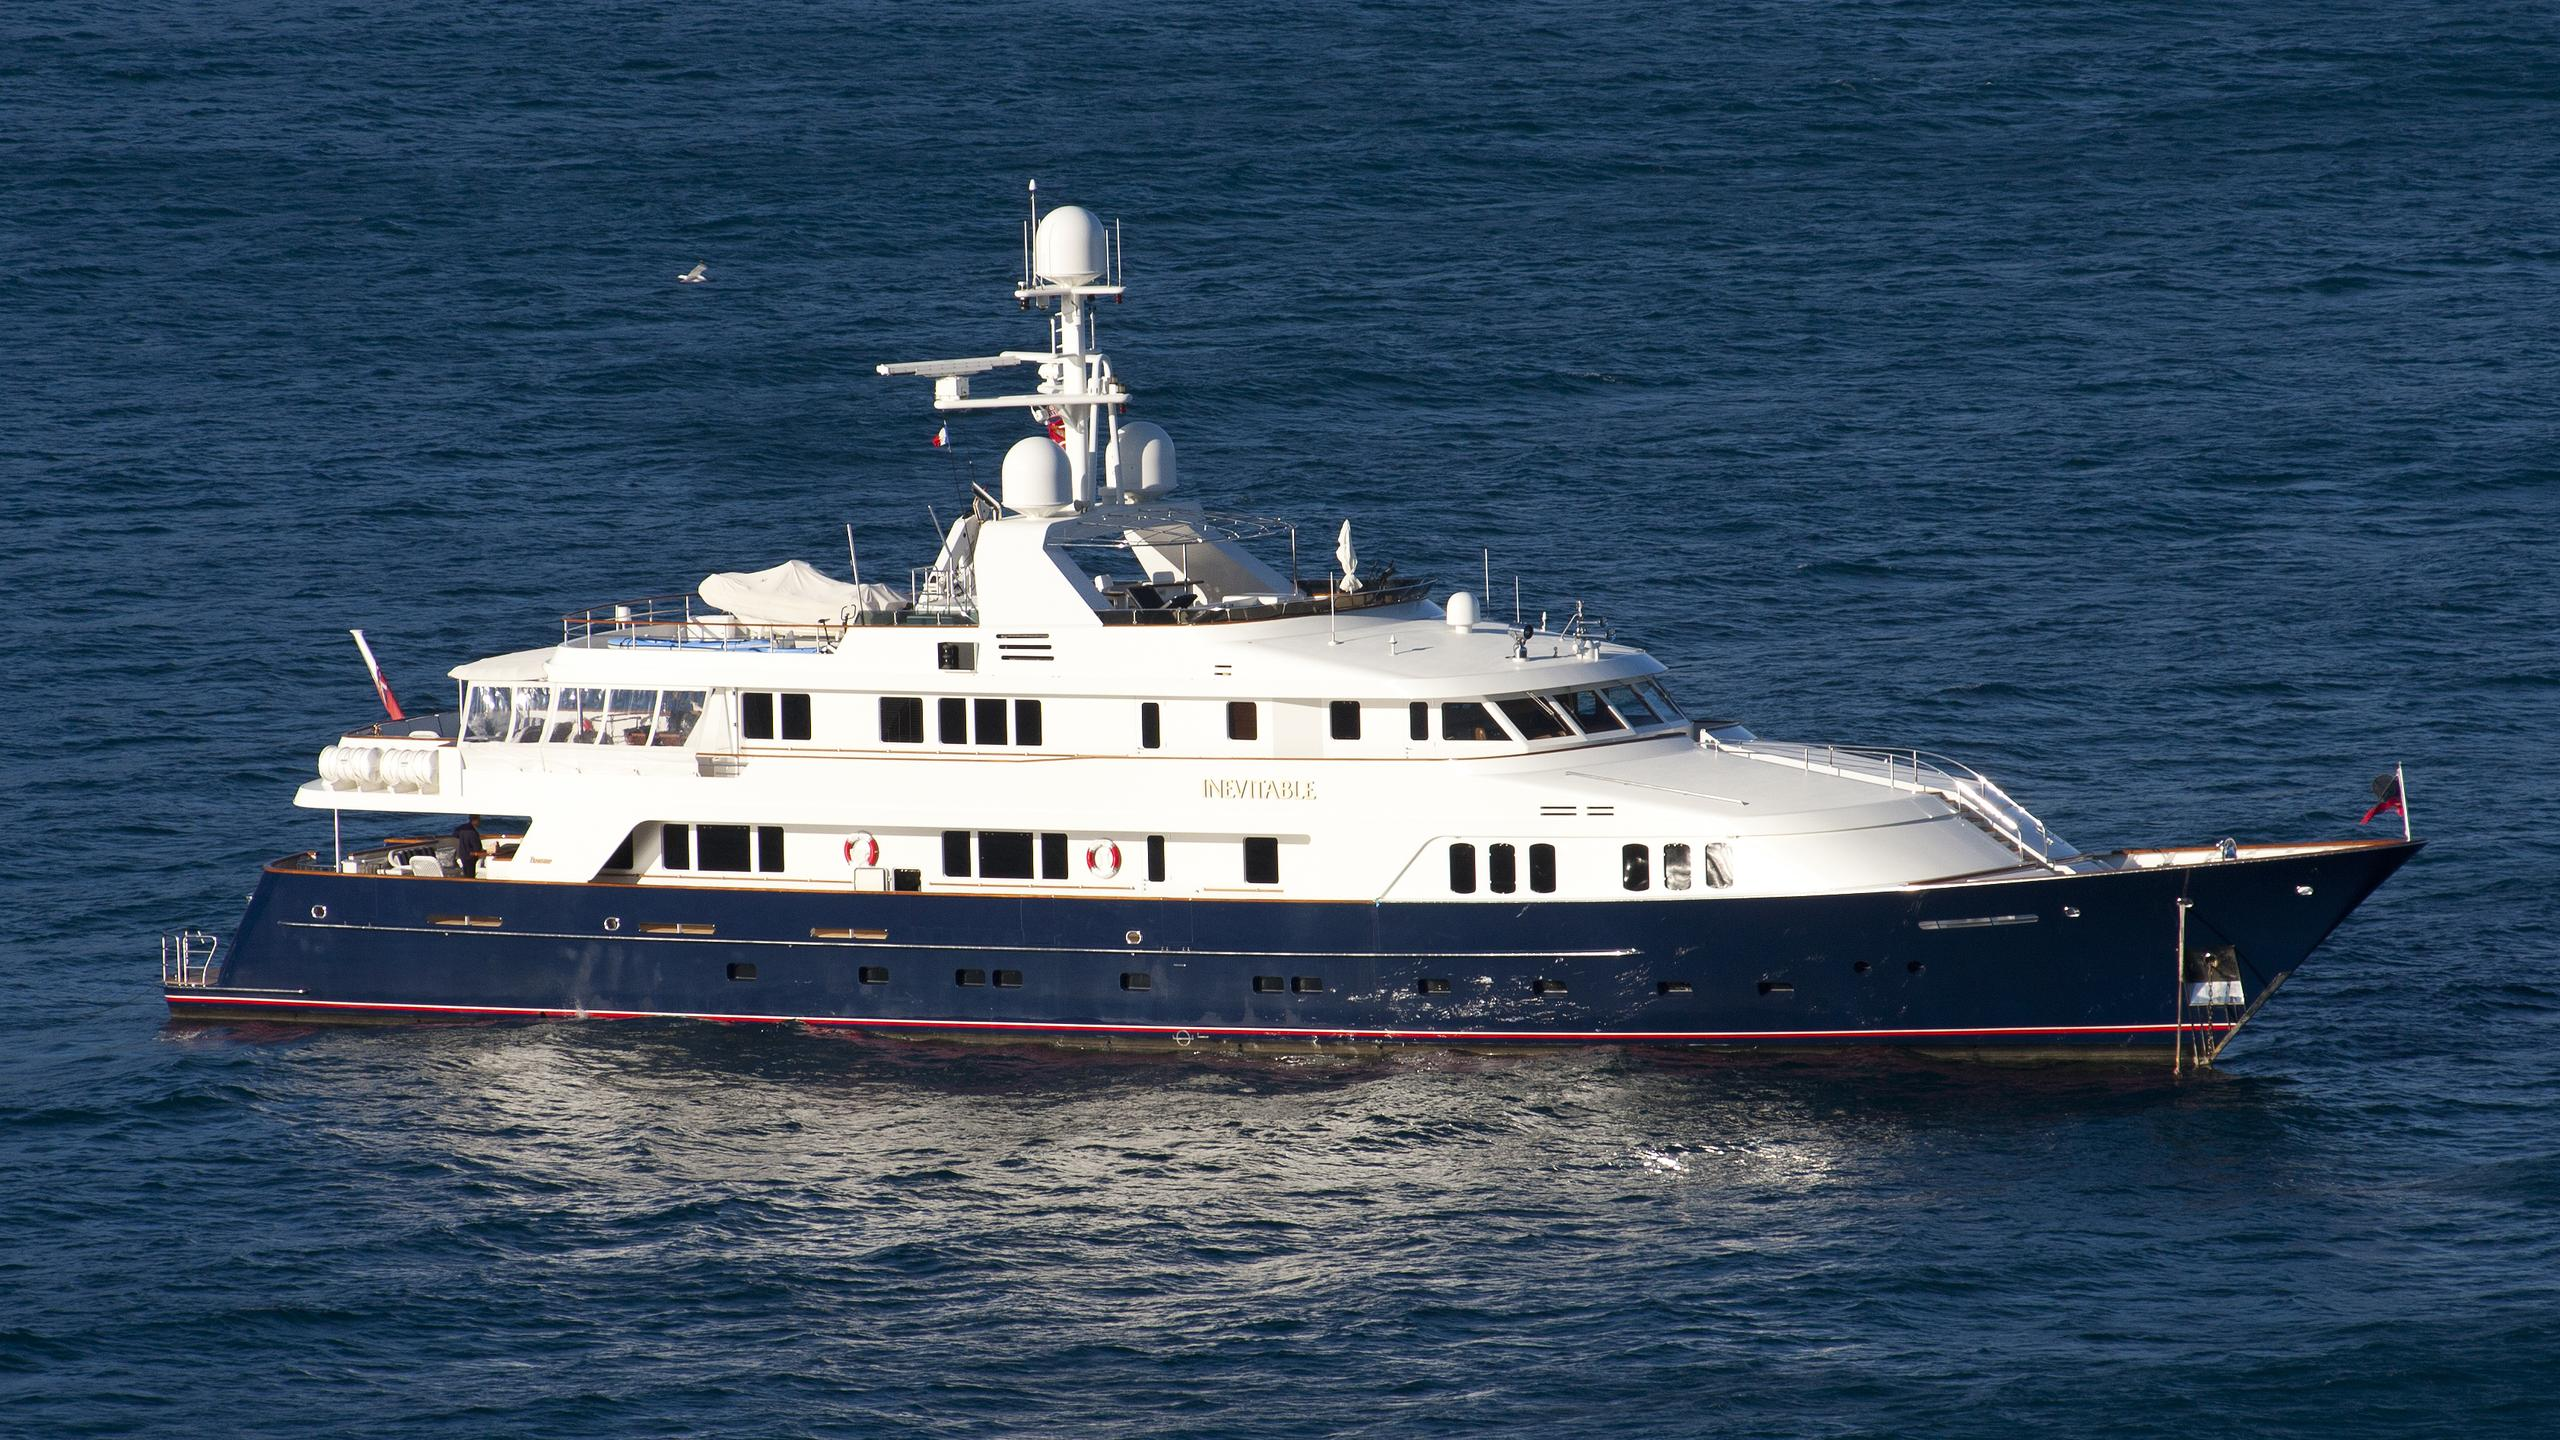 blue 470 broadwater motoryacht feadship 1990 50m half profile